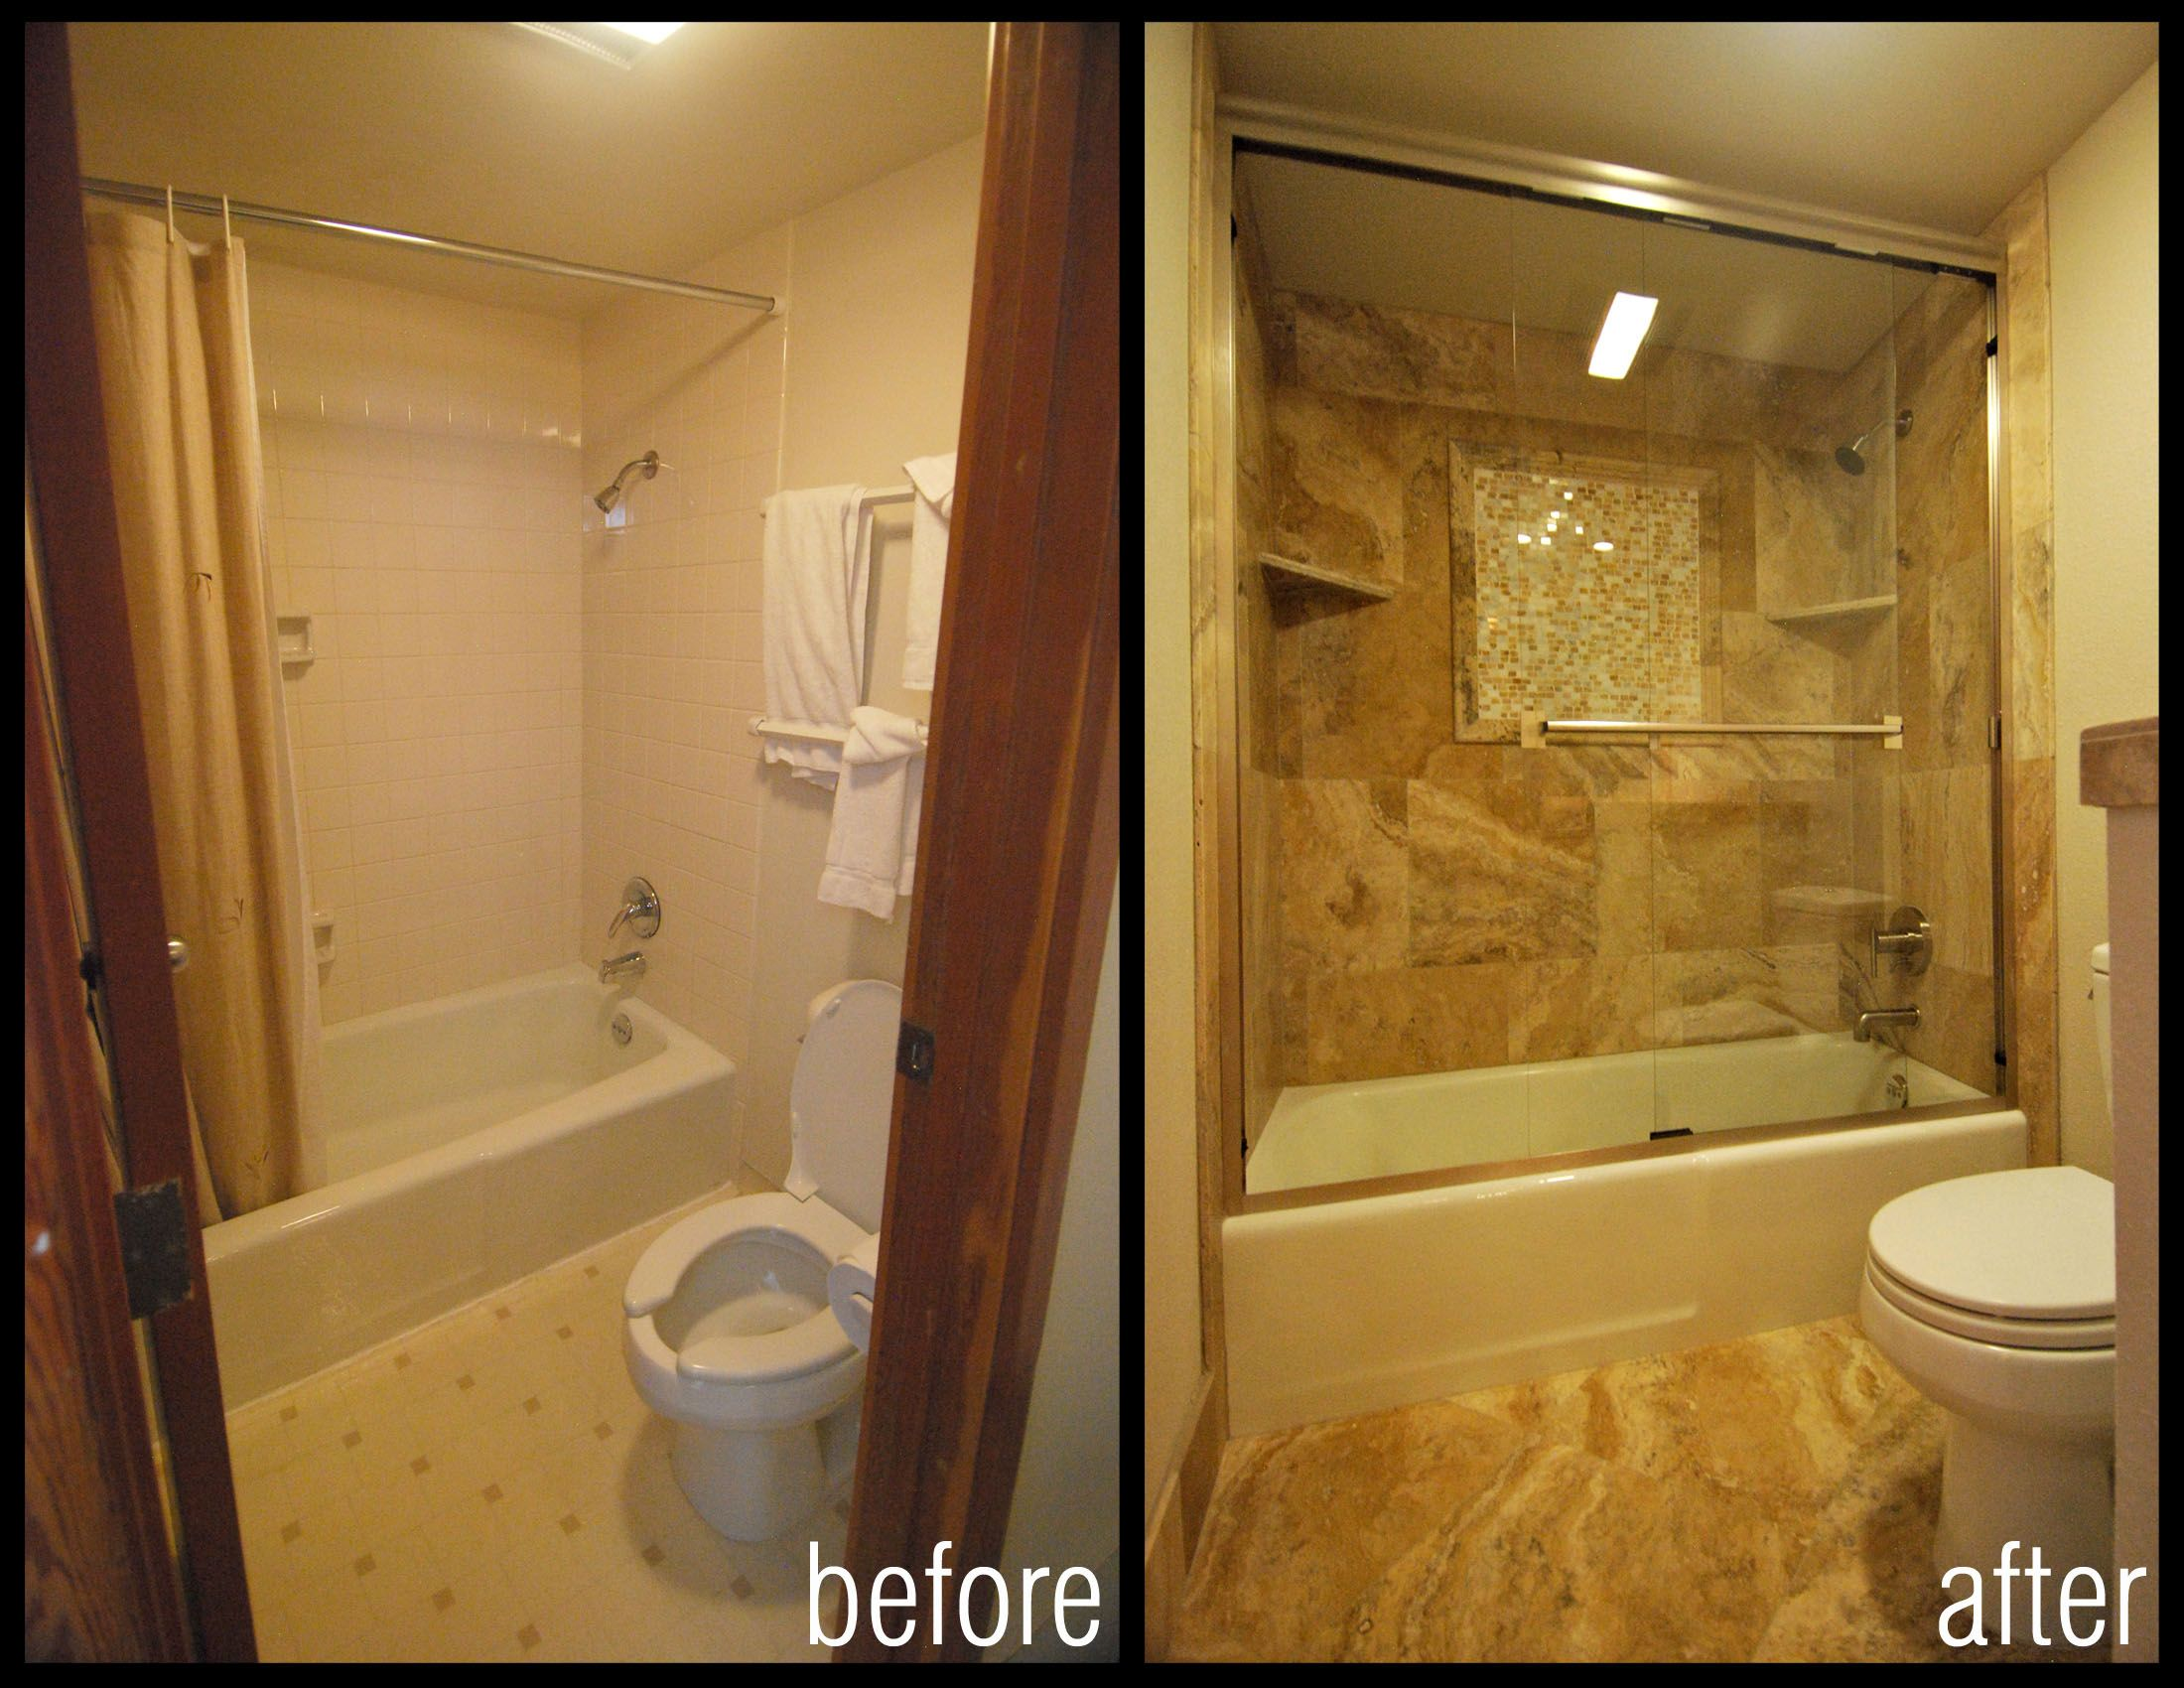 Remodel Pictures Before And After before and after images of bathroom shower remodels | condo